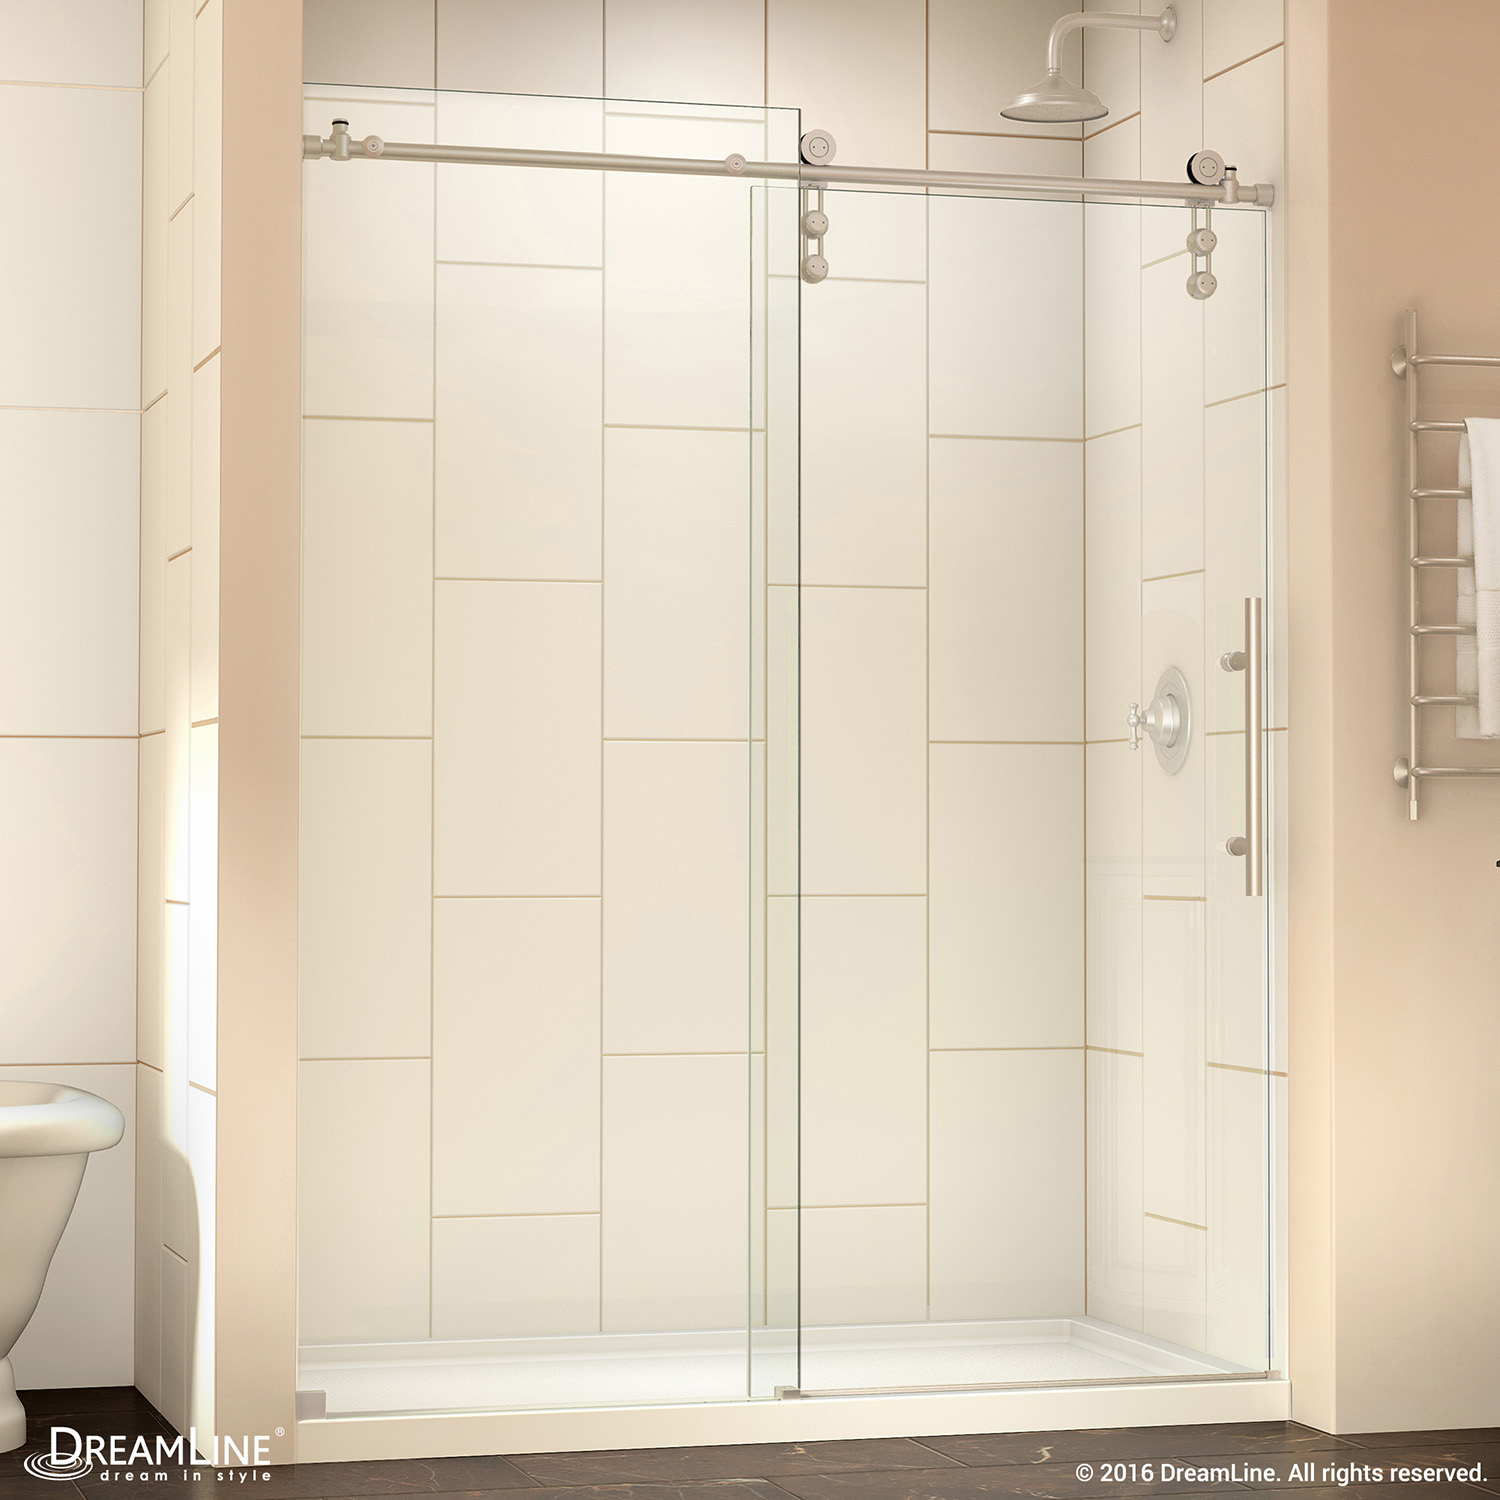 fixed lowes showers accessories frameless com enigma dreamline doors shop to at bathroom pl linea in shower w door web